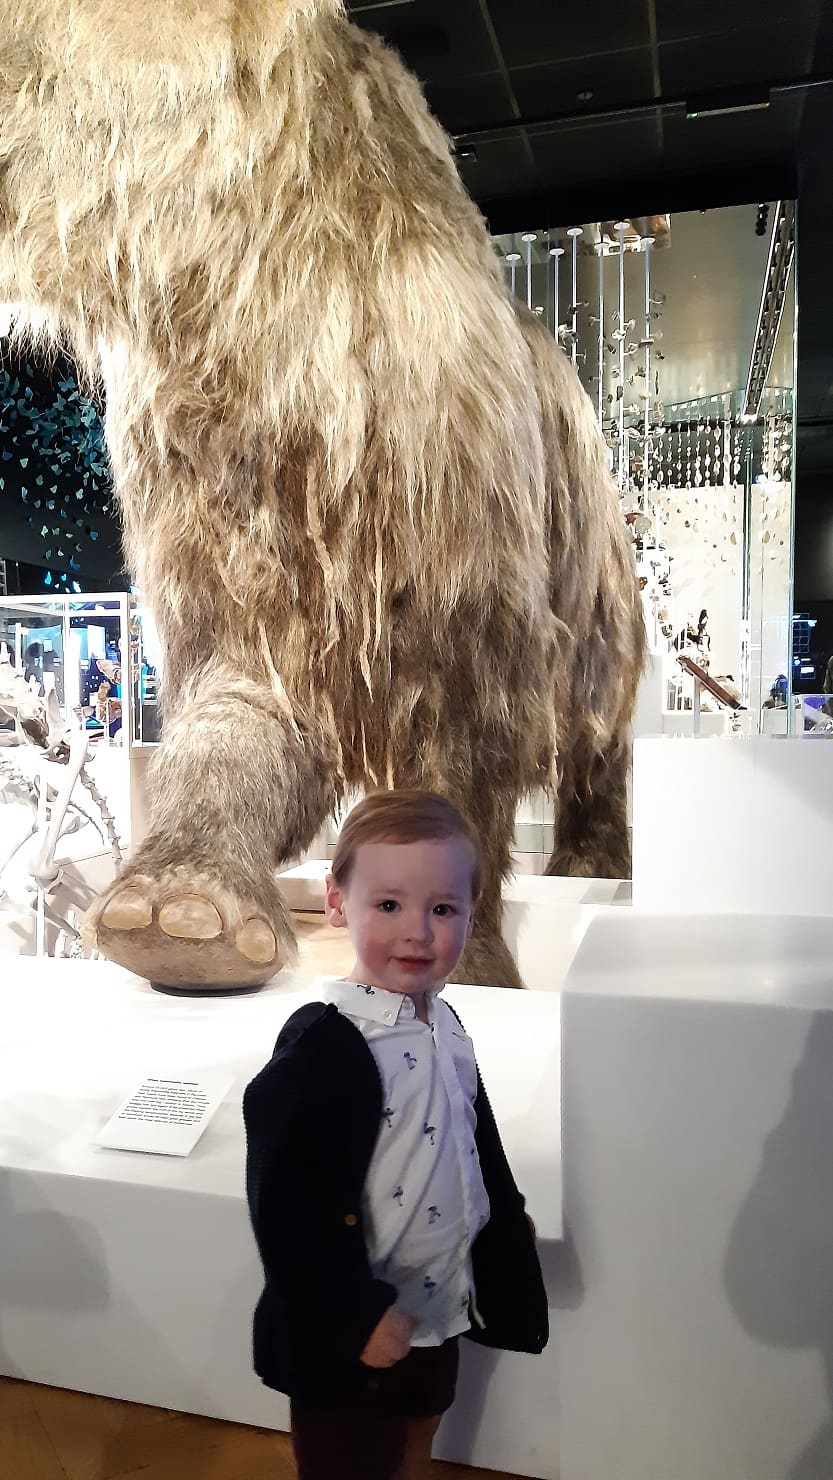 21-month old Oliver Roberts whose mum Rachael entered the competition on his behalf